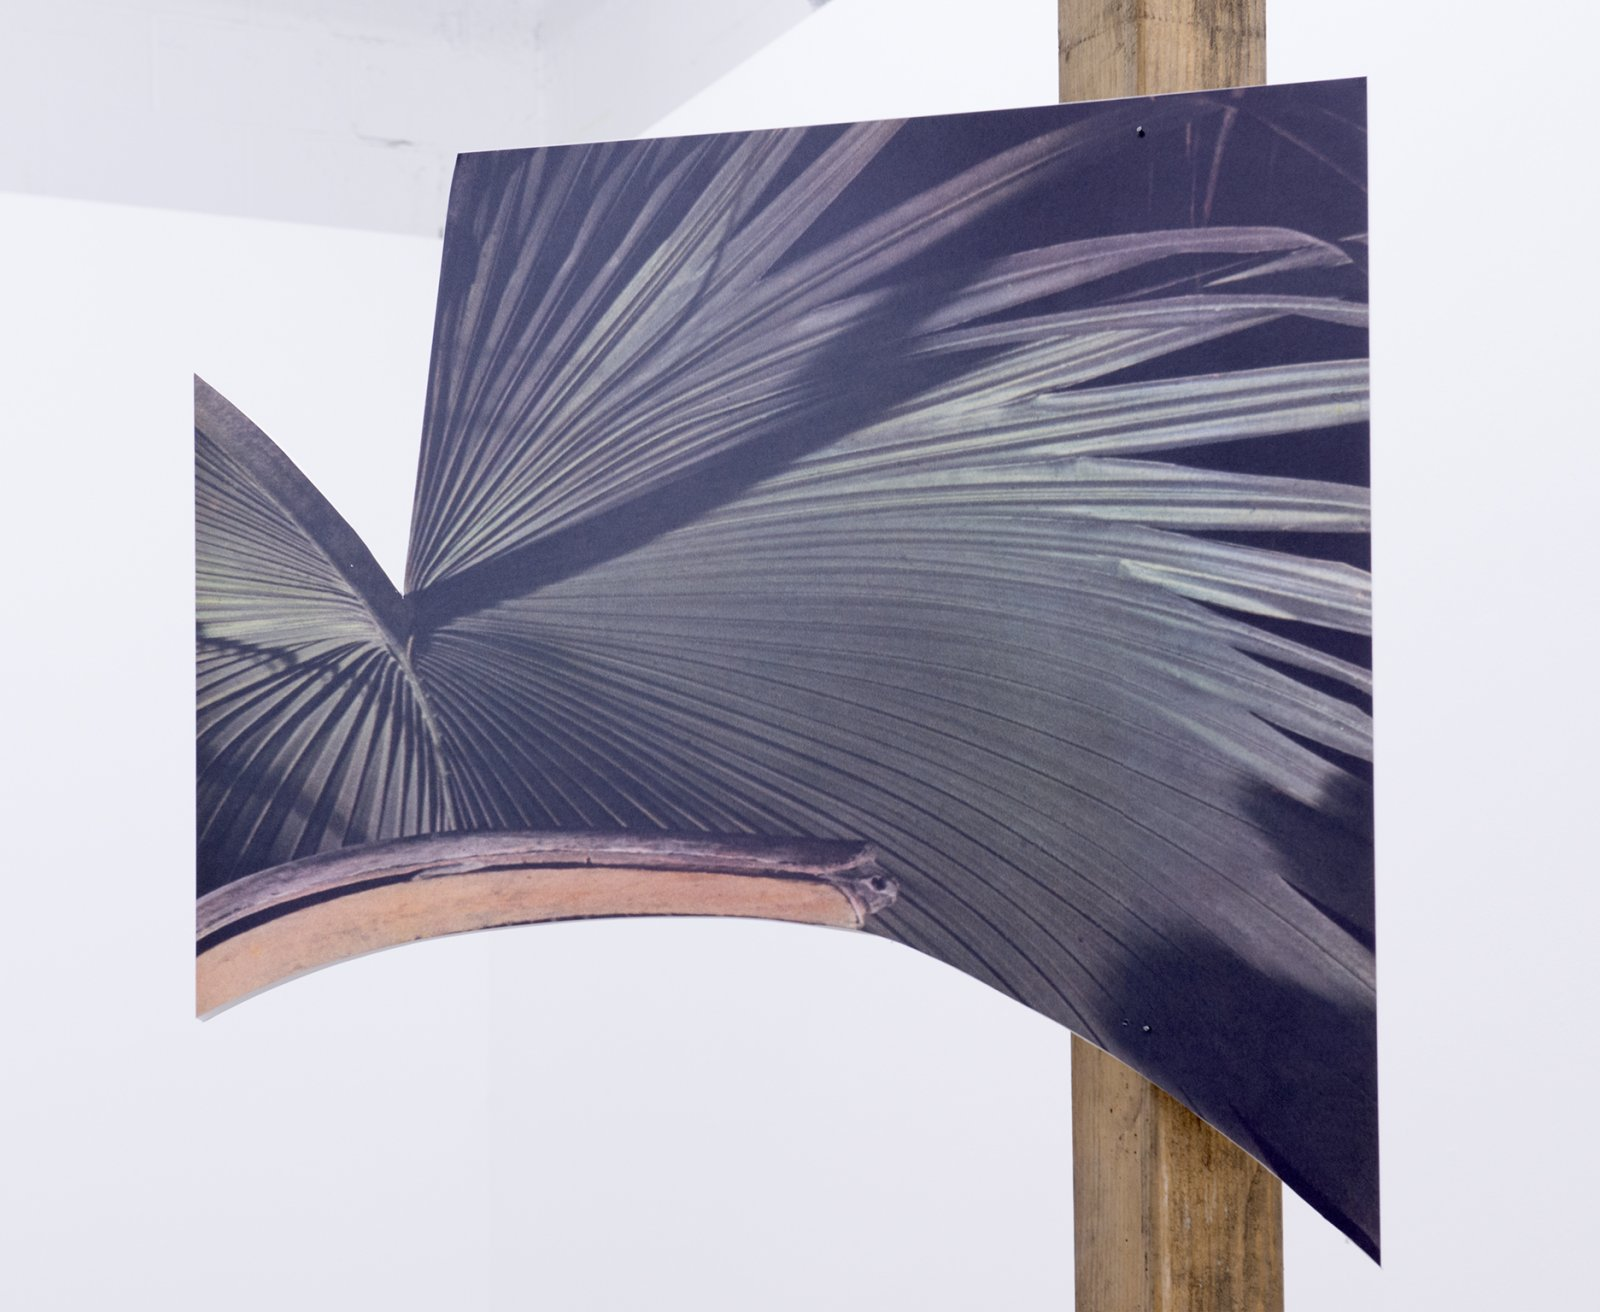 Geoffrey Farmer,This one is the lightness of a palm frond, the sound of a lute, the colour of fruit. The expressions of a monkey. A large orange eye. I drift in the warm wind.(detail), 2014, douglas fir pole, 6 photographs mounted on foamcore, 200 x 4 x 4 in. (508 x9 x 9 cm)